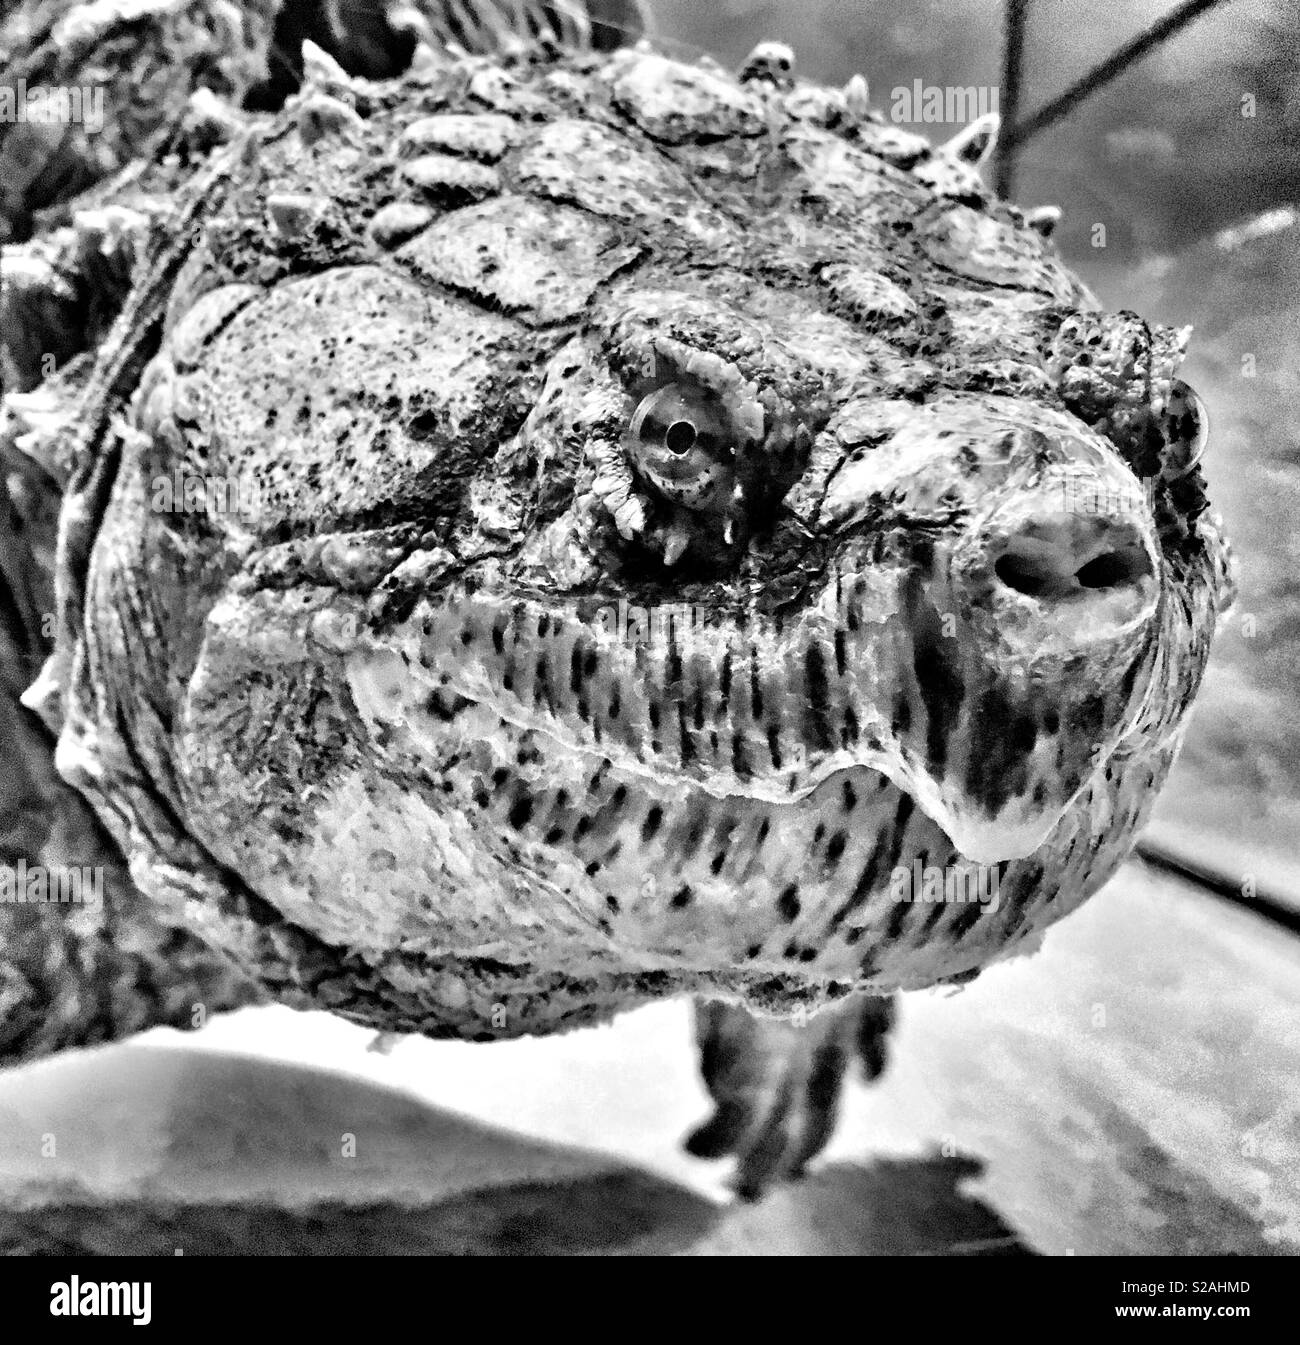 Florida Snapping Turtle closeup - Stock Image